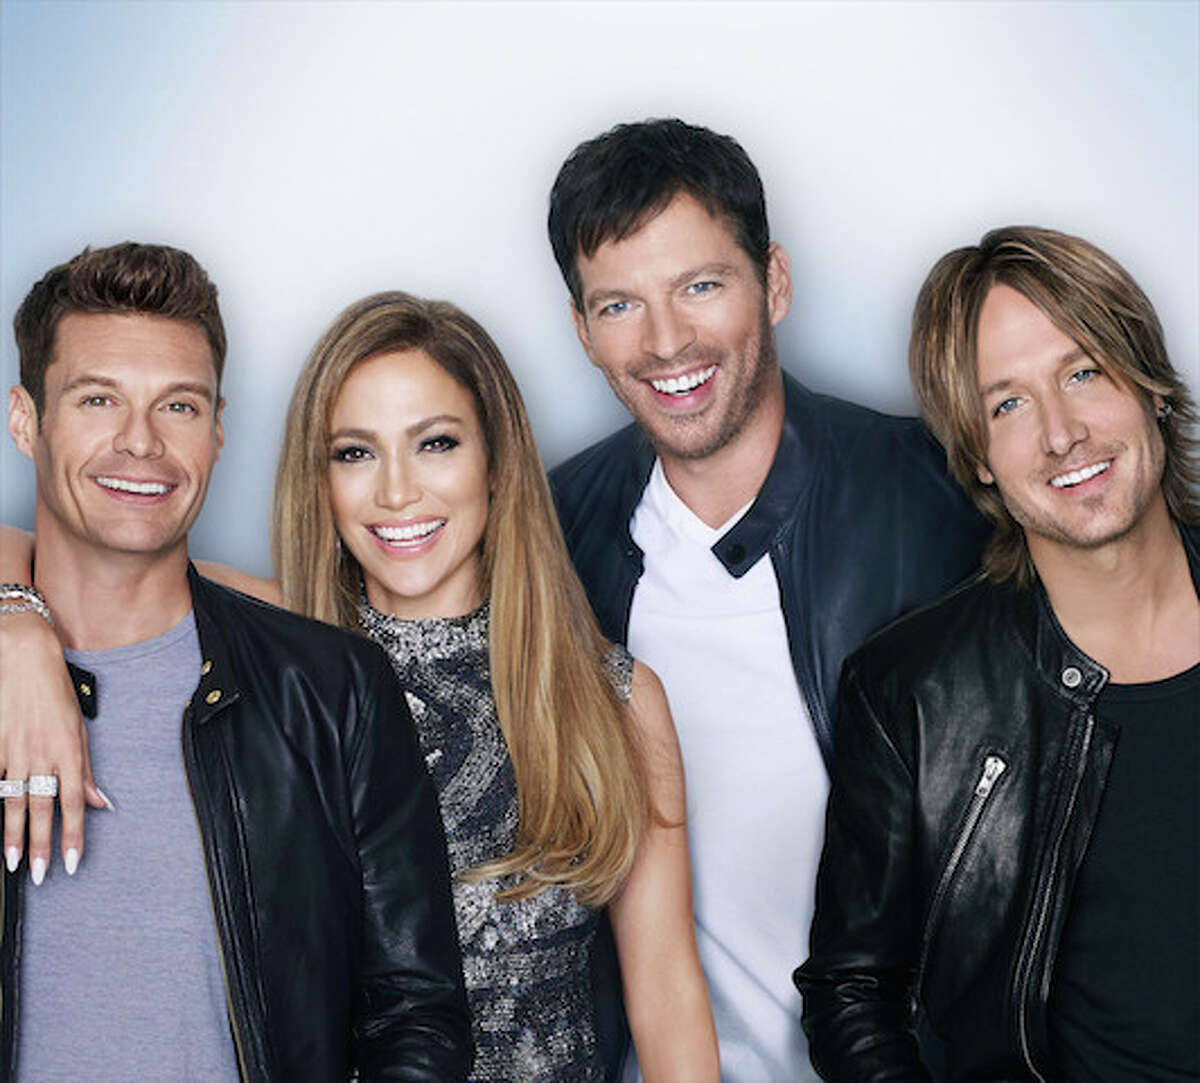 """""""American Idol's"""" final season begins Wednesday night, capping off 14 years and 15 seasons of showcasing amateur talent and producing hit-and-miss stars.Let's reminisce about the personalities we know today thanks to """"American Idol."""""""